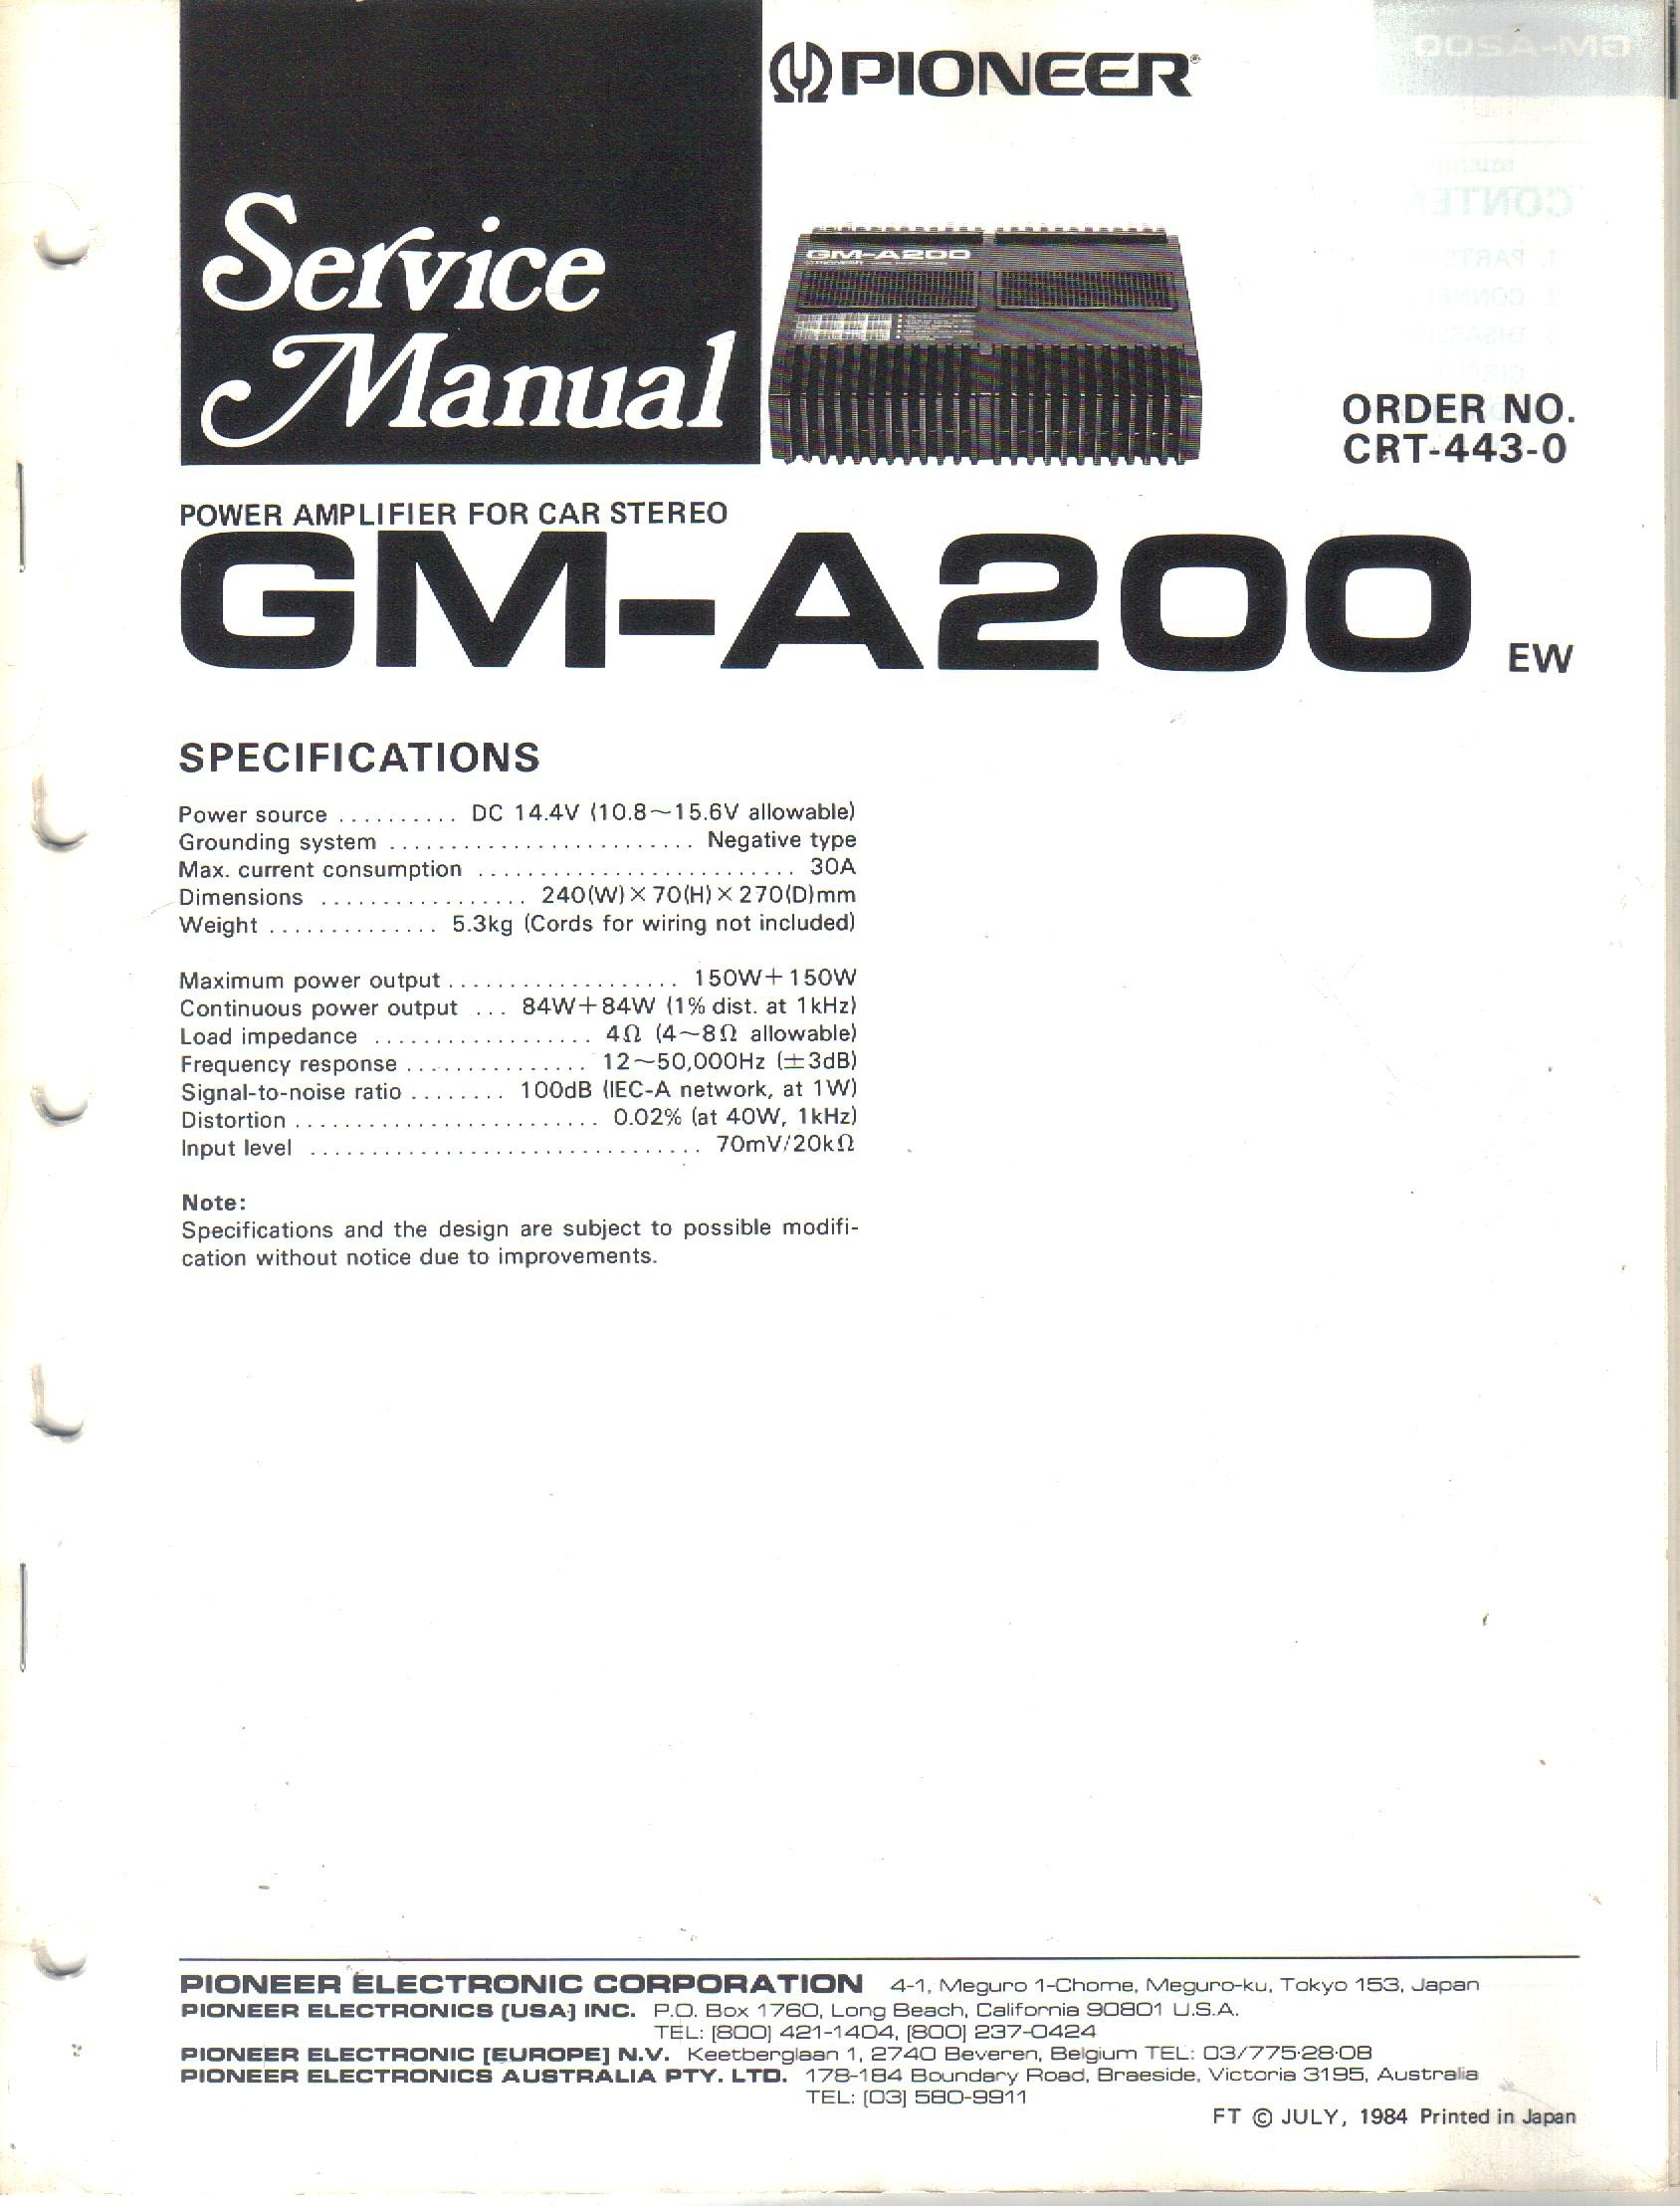 Pioneer Gm A200 Power Amplifier For Car Stereo Service Manual Cd Wiring Diagram Parts List Schematic Electronic Corp Not Stated Books